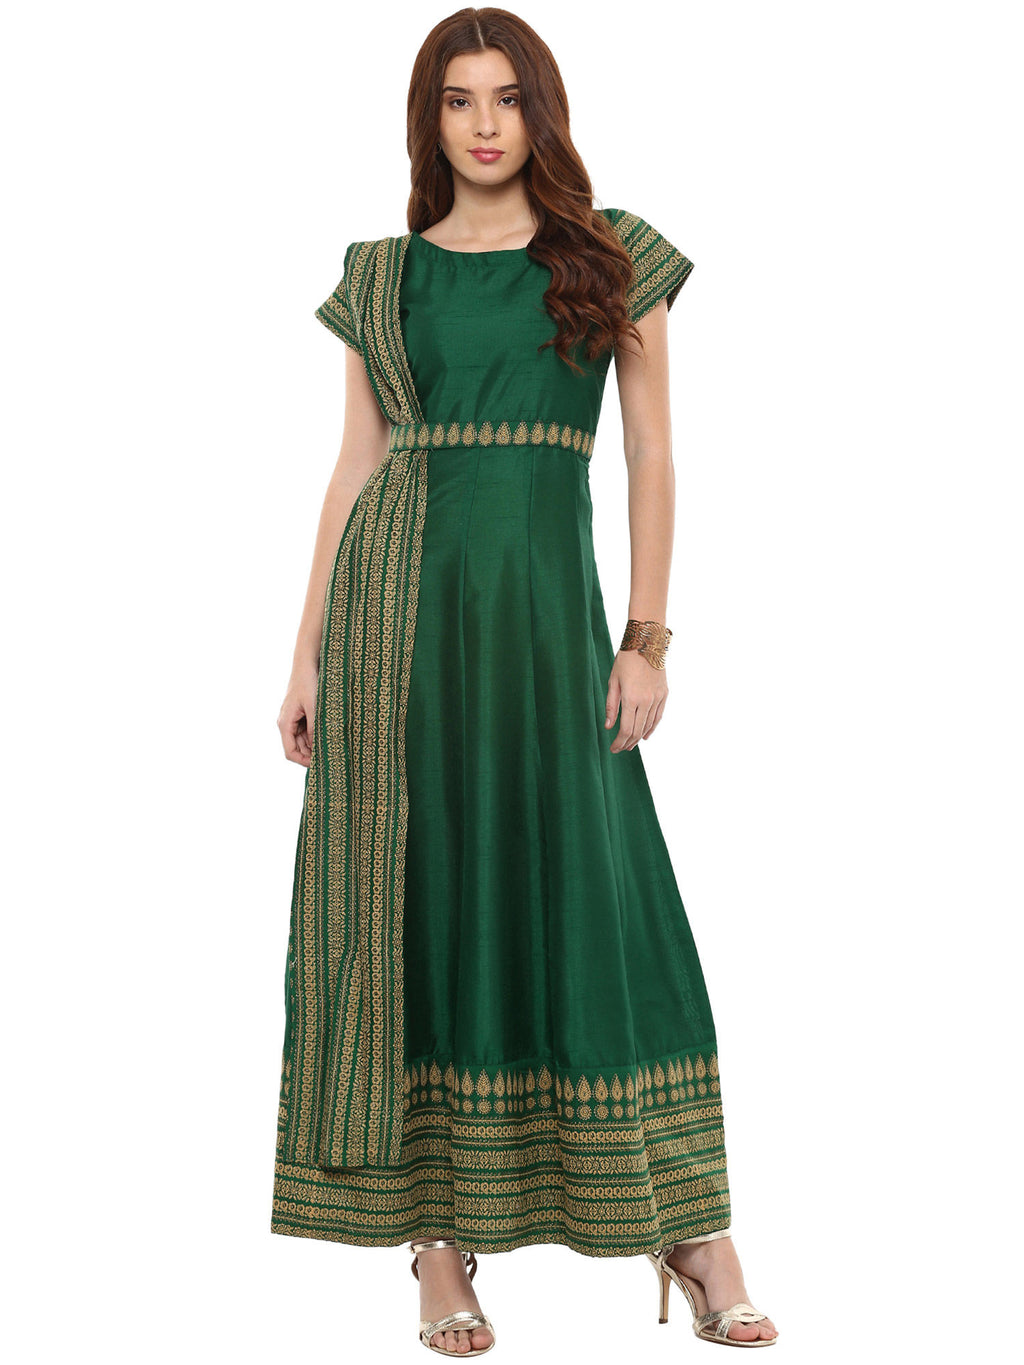 Green Printed Poly Silk Anarkali With Attached Dupatta - Riviera Closet